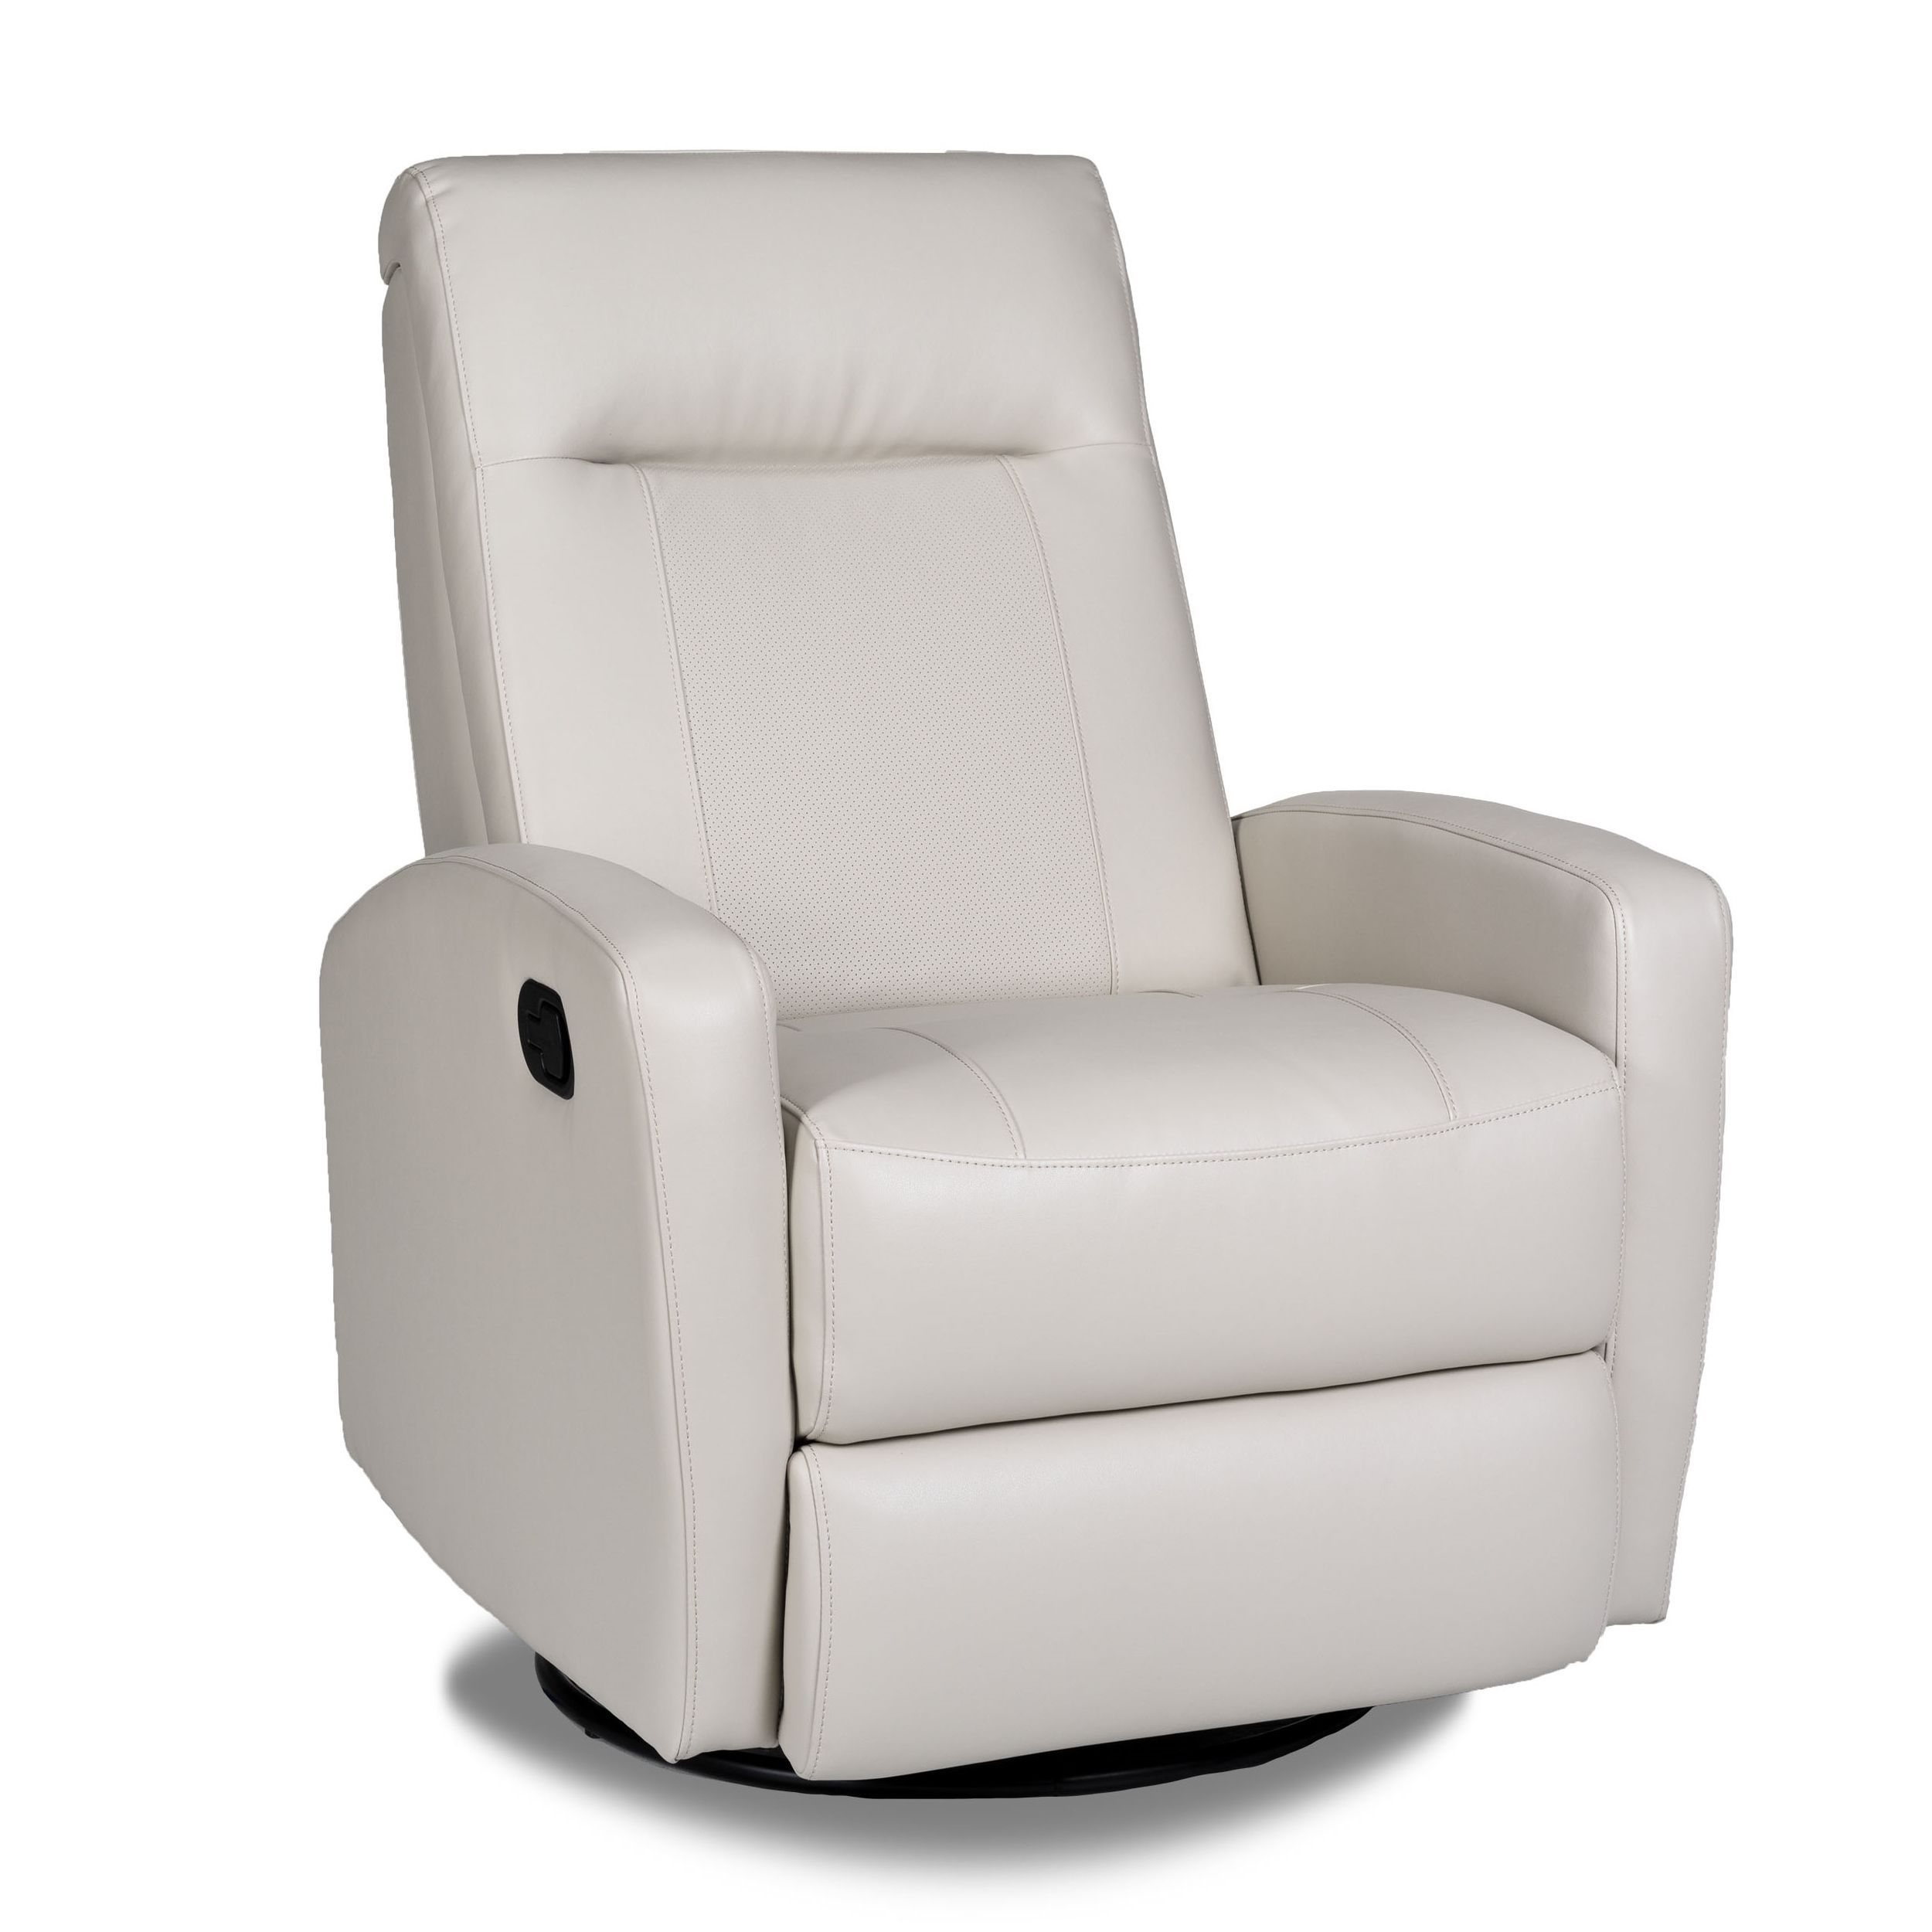 Stefan Bonded Leather Swivel Glider Recliner – Overstock™ Shopping Throughout Dale Iii Polyurethane Swivel Glider Recliners (Image 25 of 25)